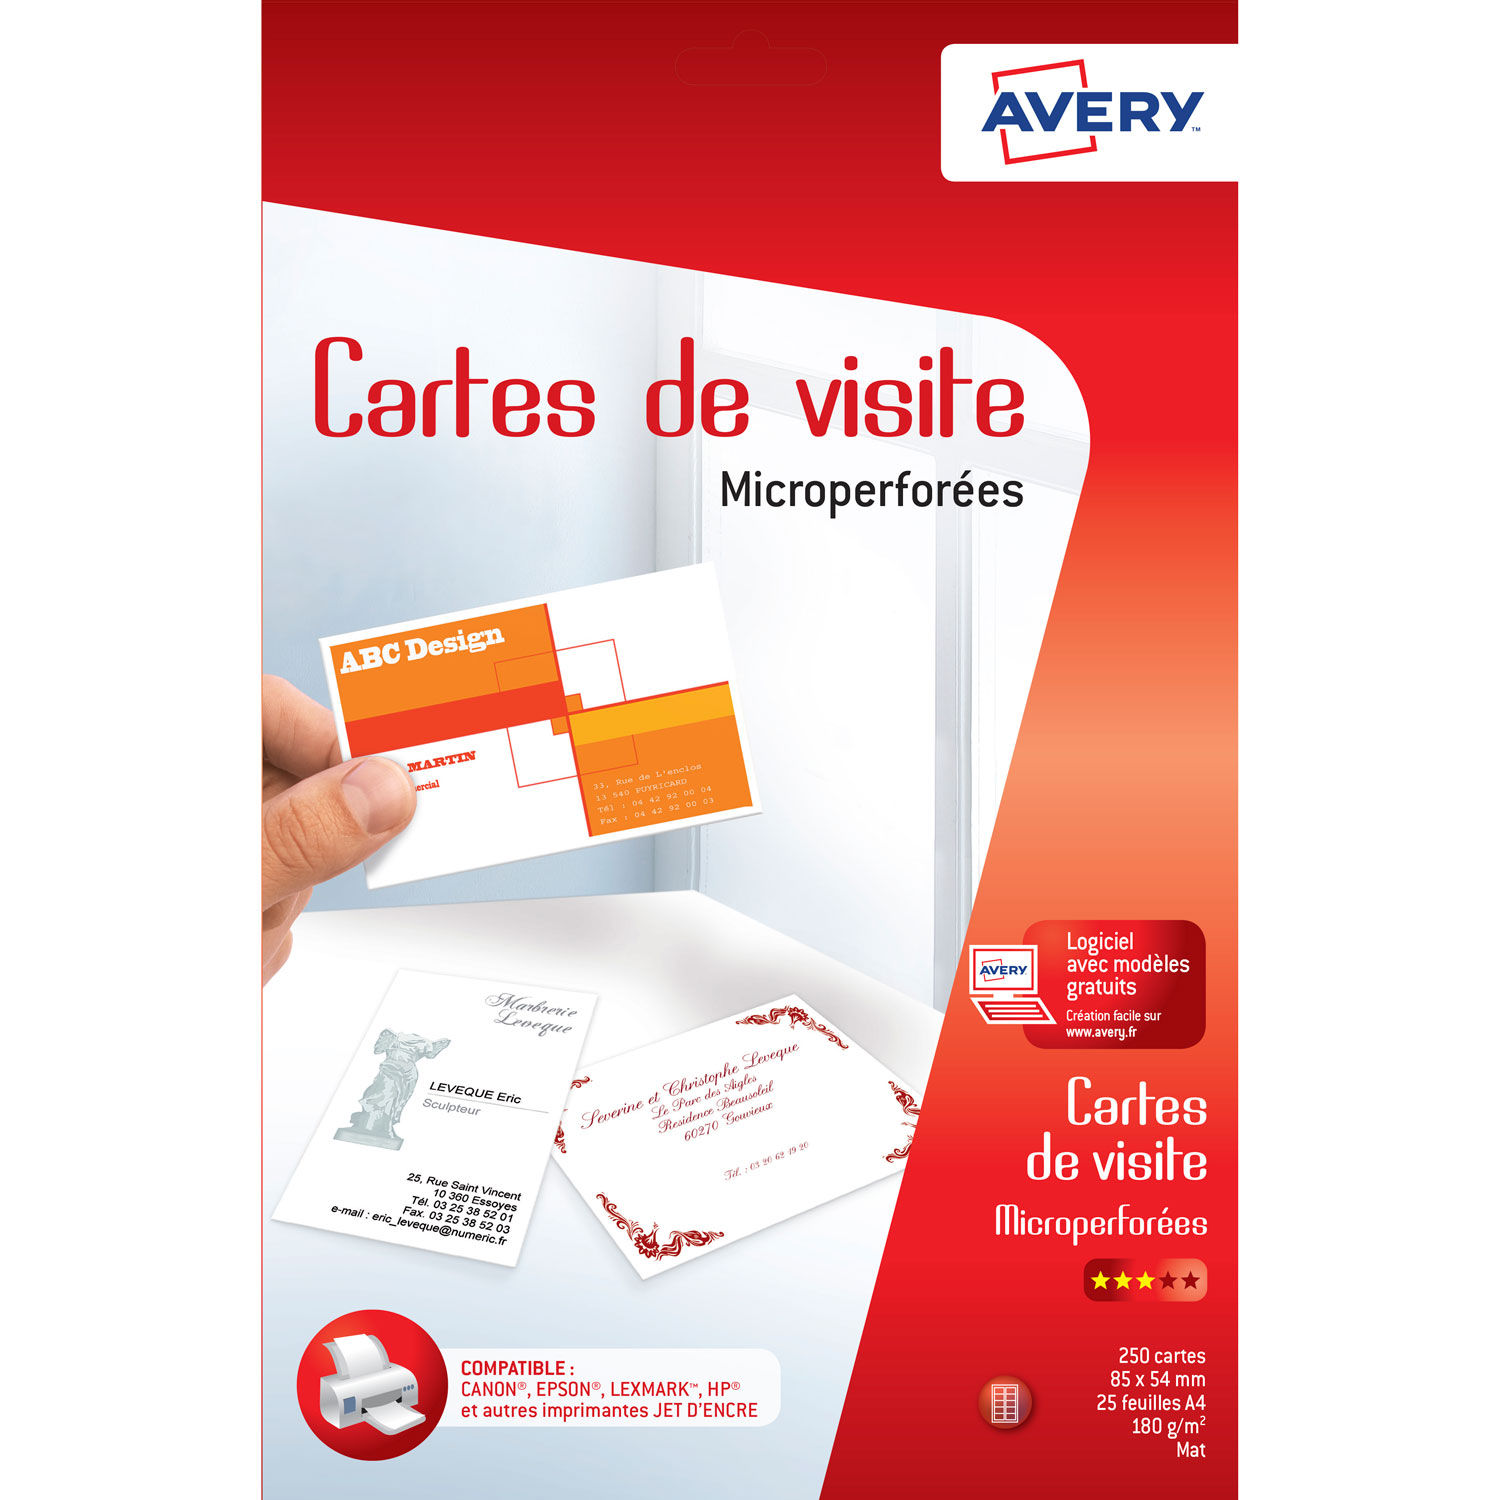 Porte Carte De Visite Avery QuickClean 250 Cartes 85 X 54 Mm